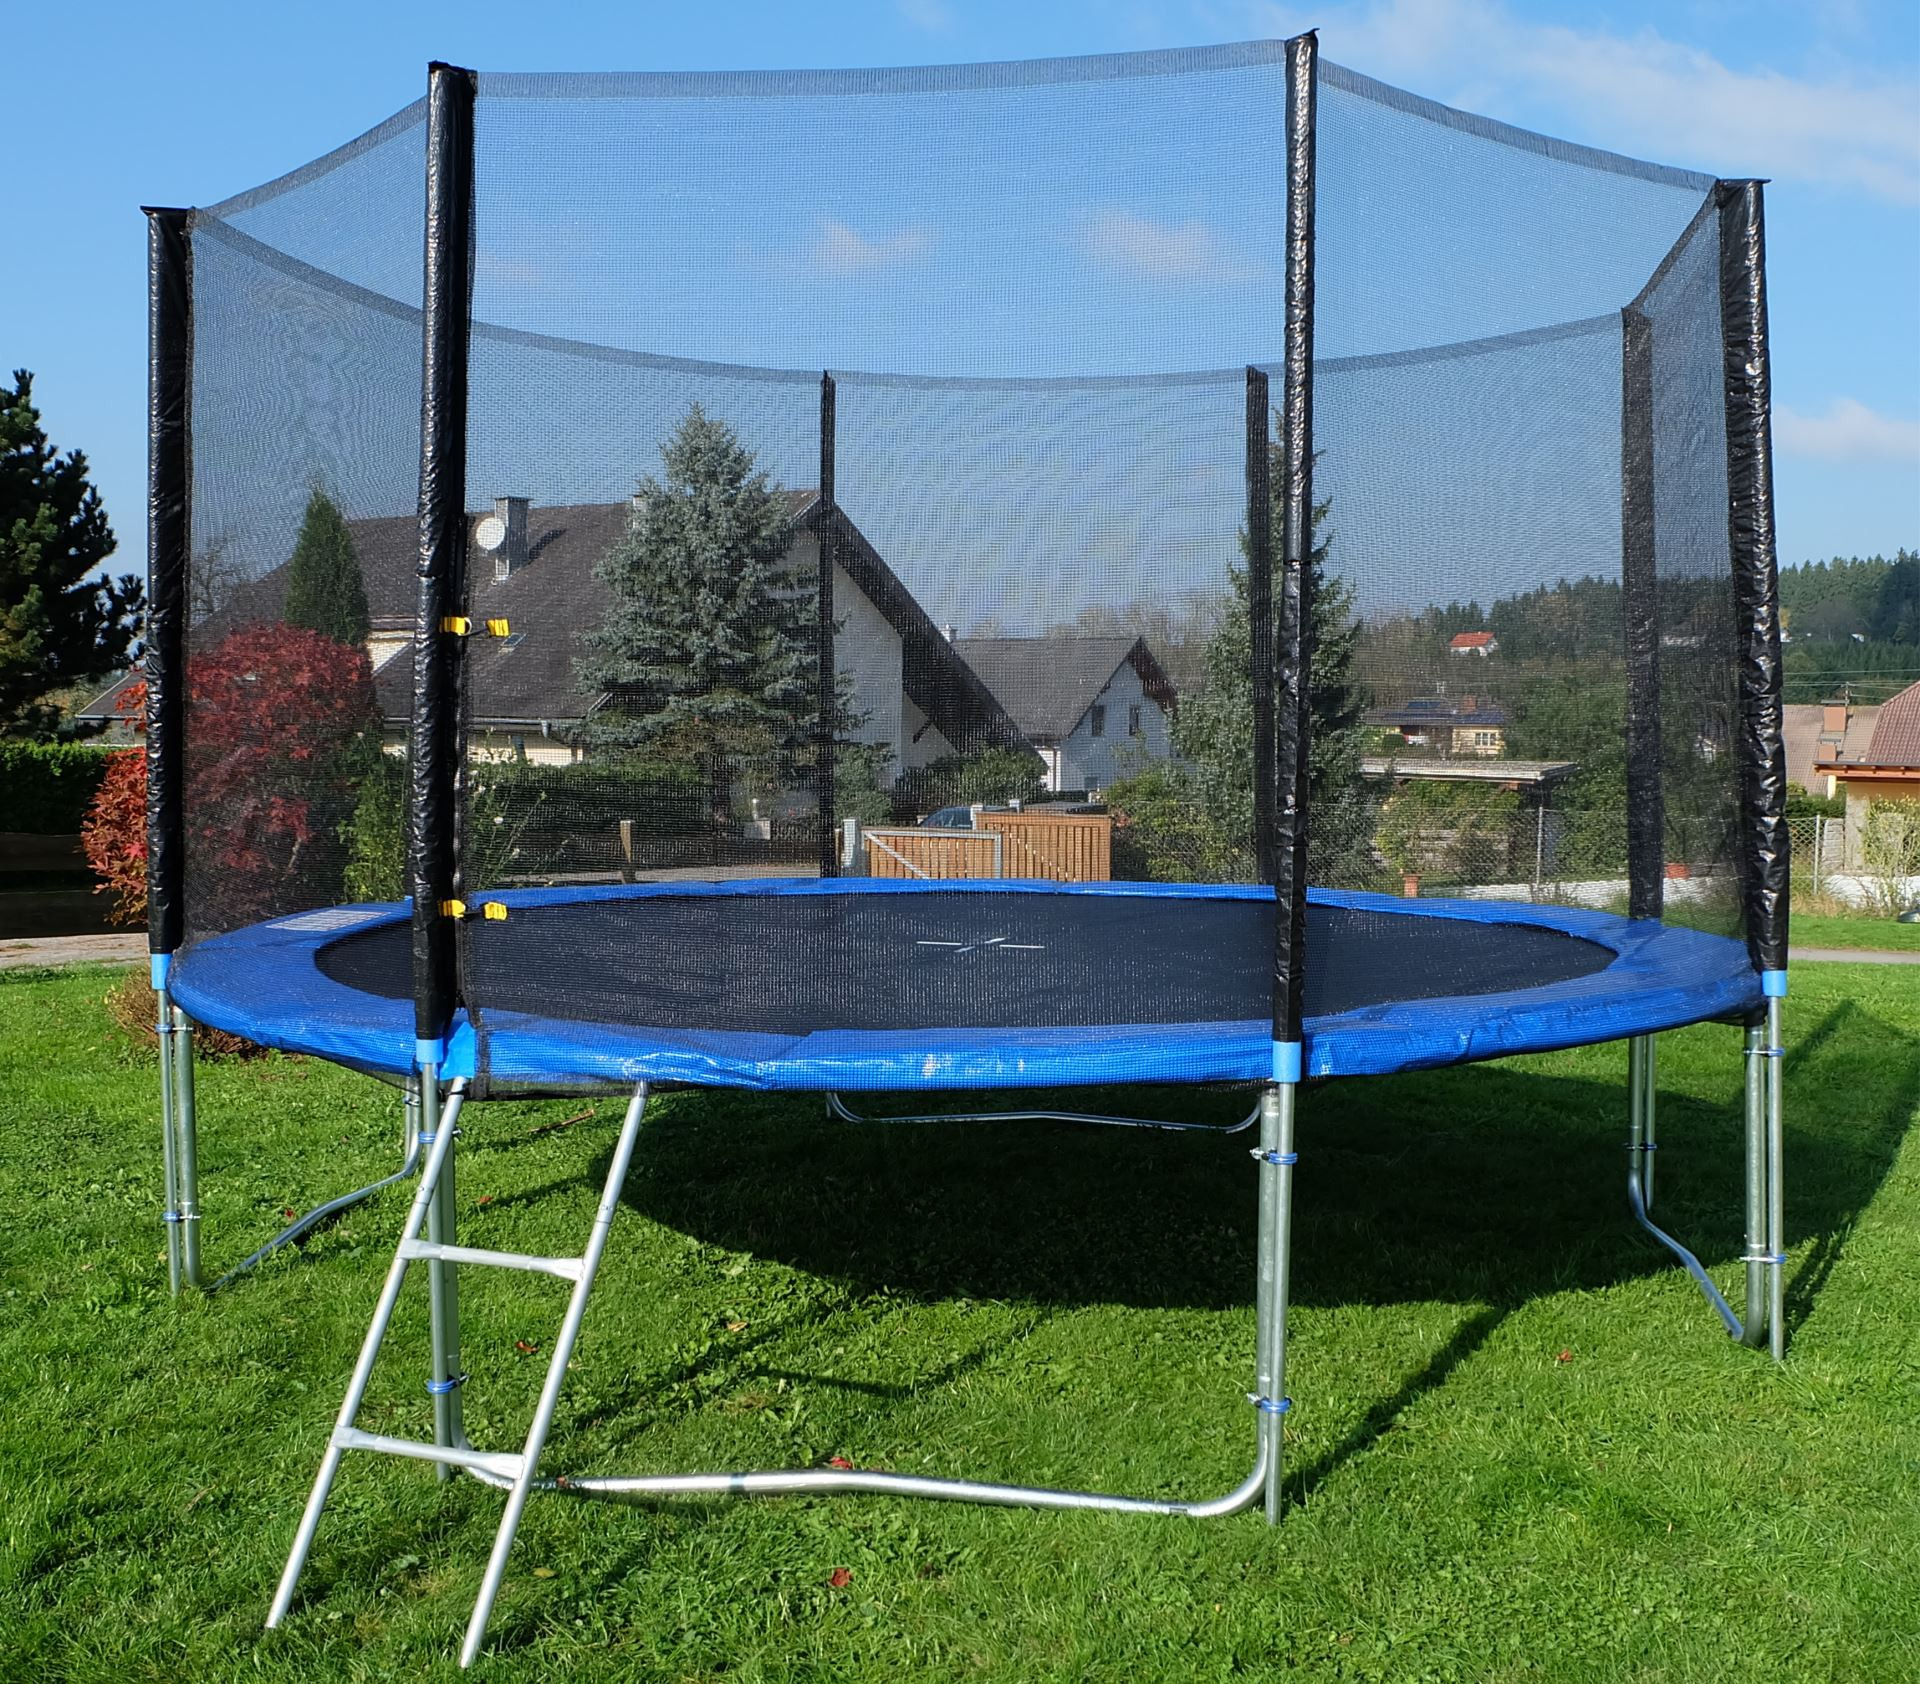 outdoor gartentrampolin trampolin xl 436cm komplett inkl sicherheitsnetz und leiter t v. Black Bedroom Furniture Sets. Home Design Ideas